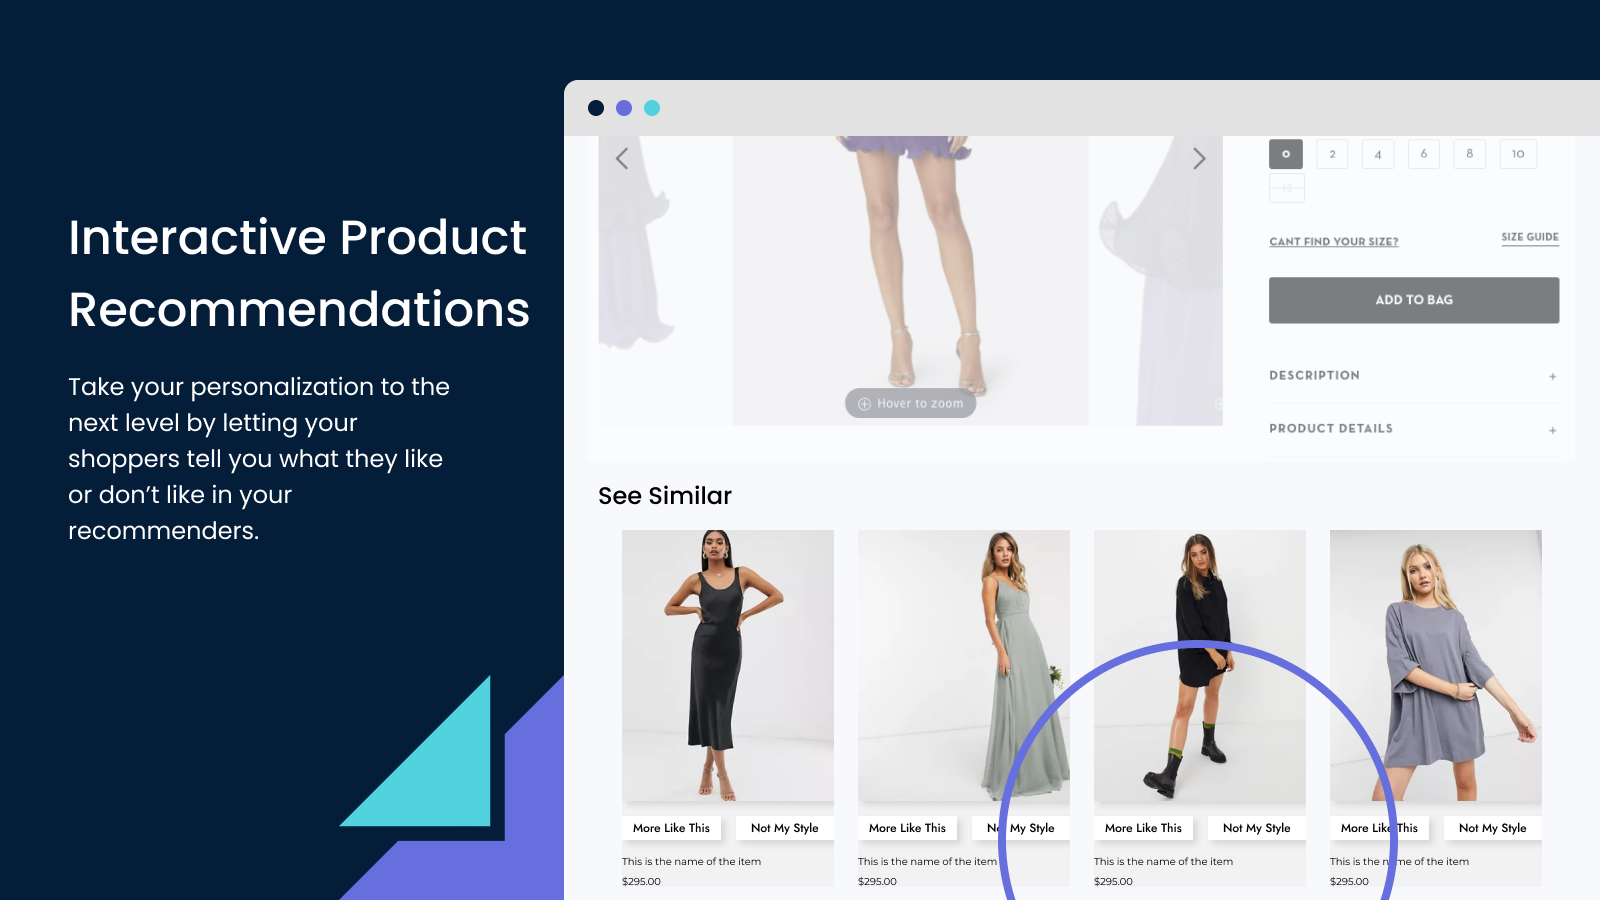 Interactive Product Recommendations